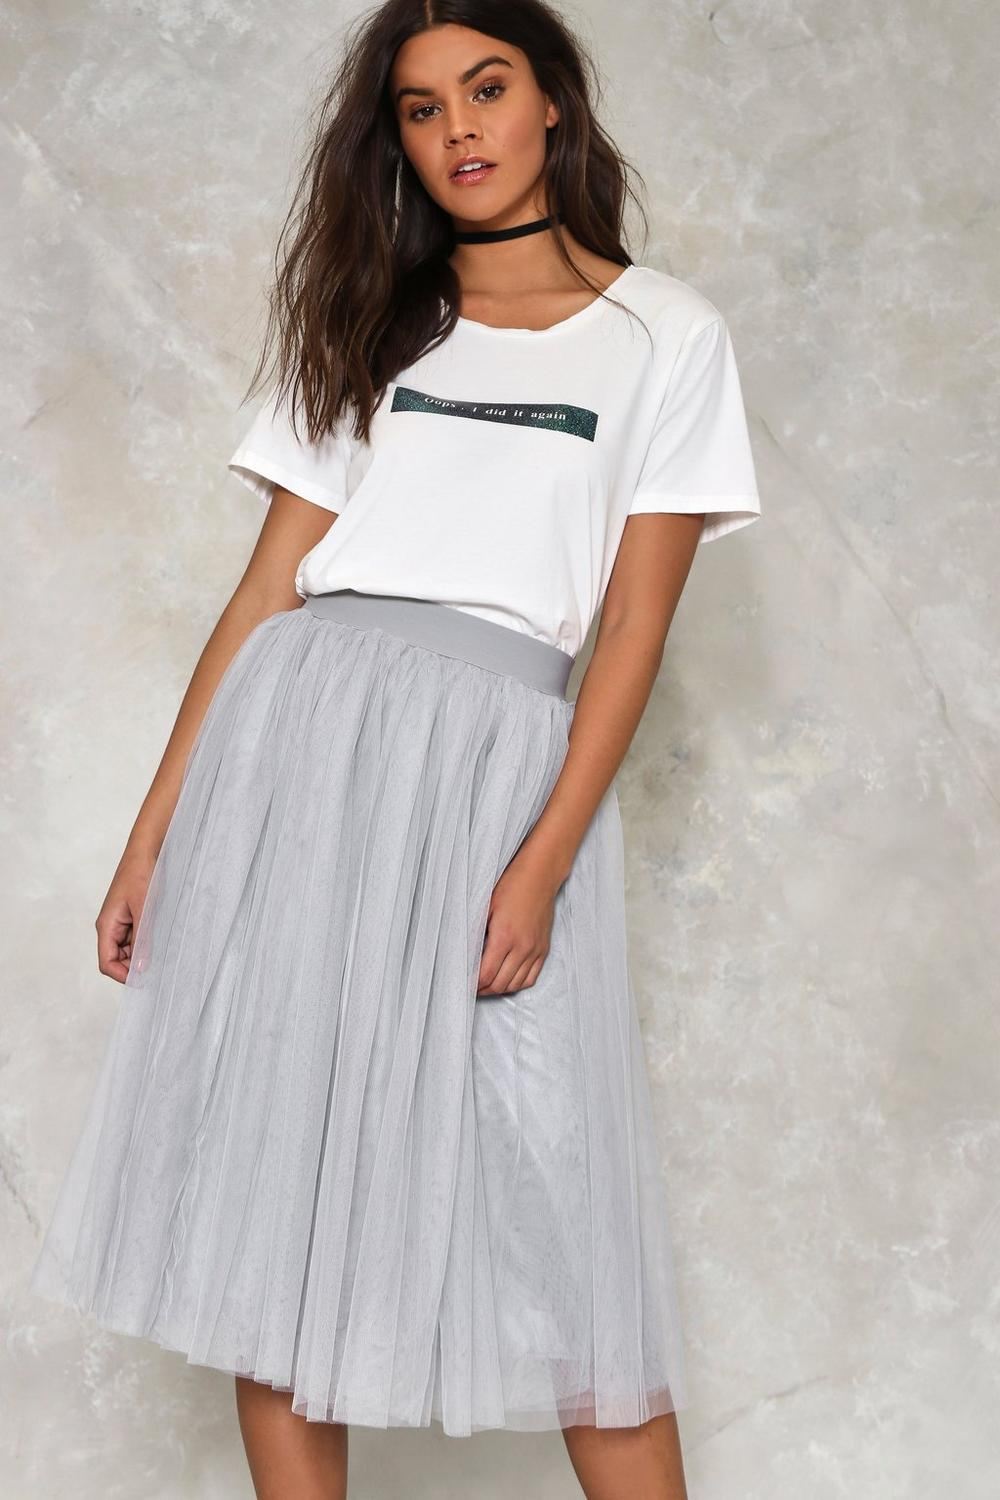 91dbb3dd1 Tulle Cool for Rules Midi Skirt | Shop Clothes at Nasty Gal!